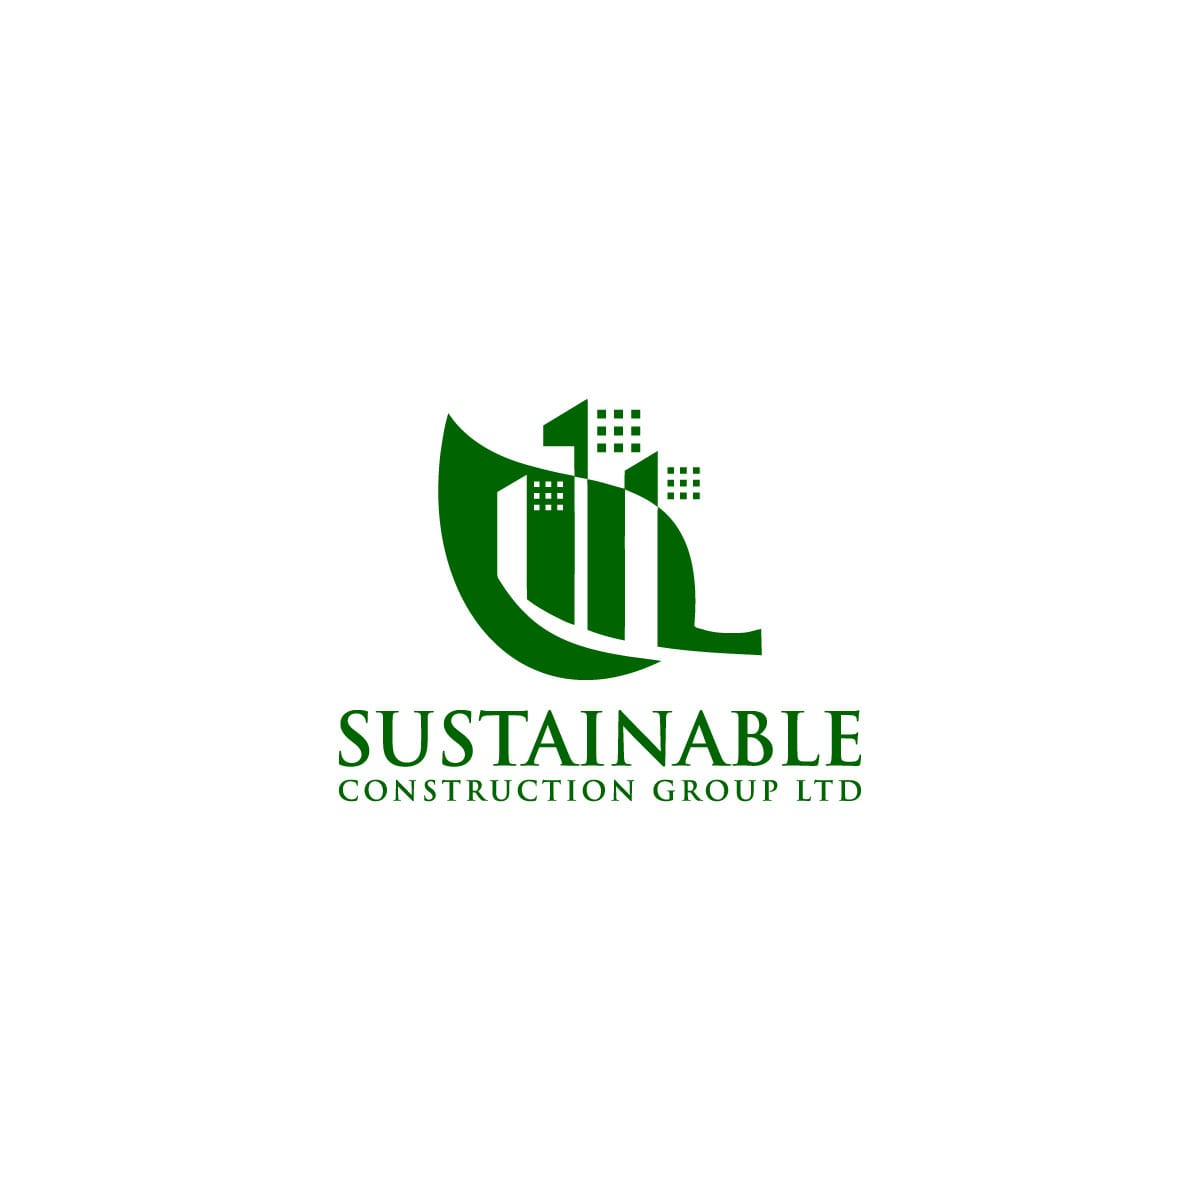 Sustainable Construction Group